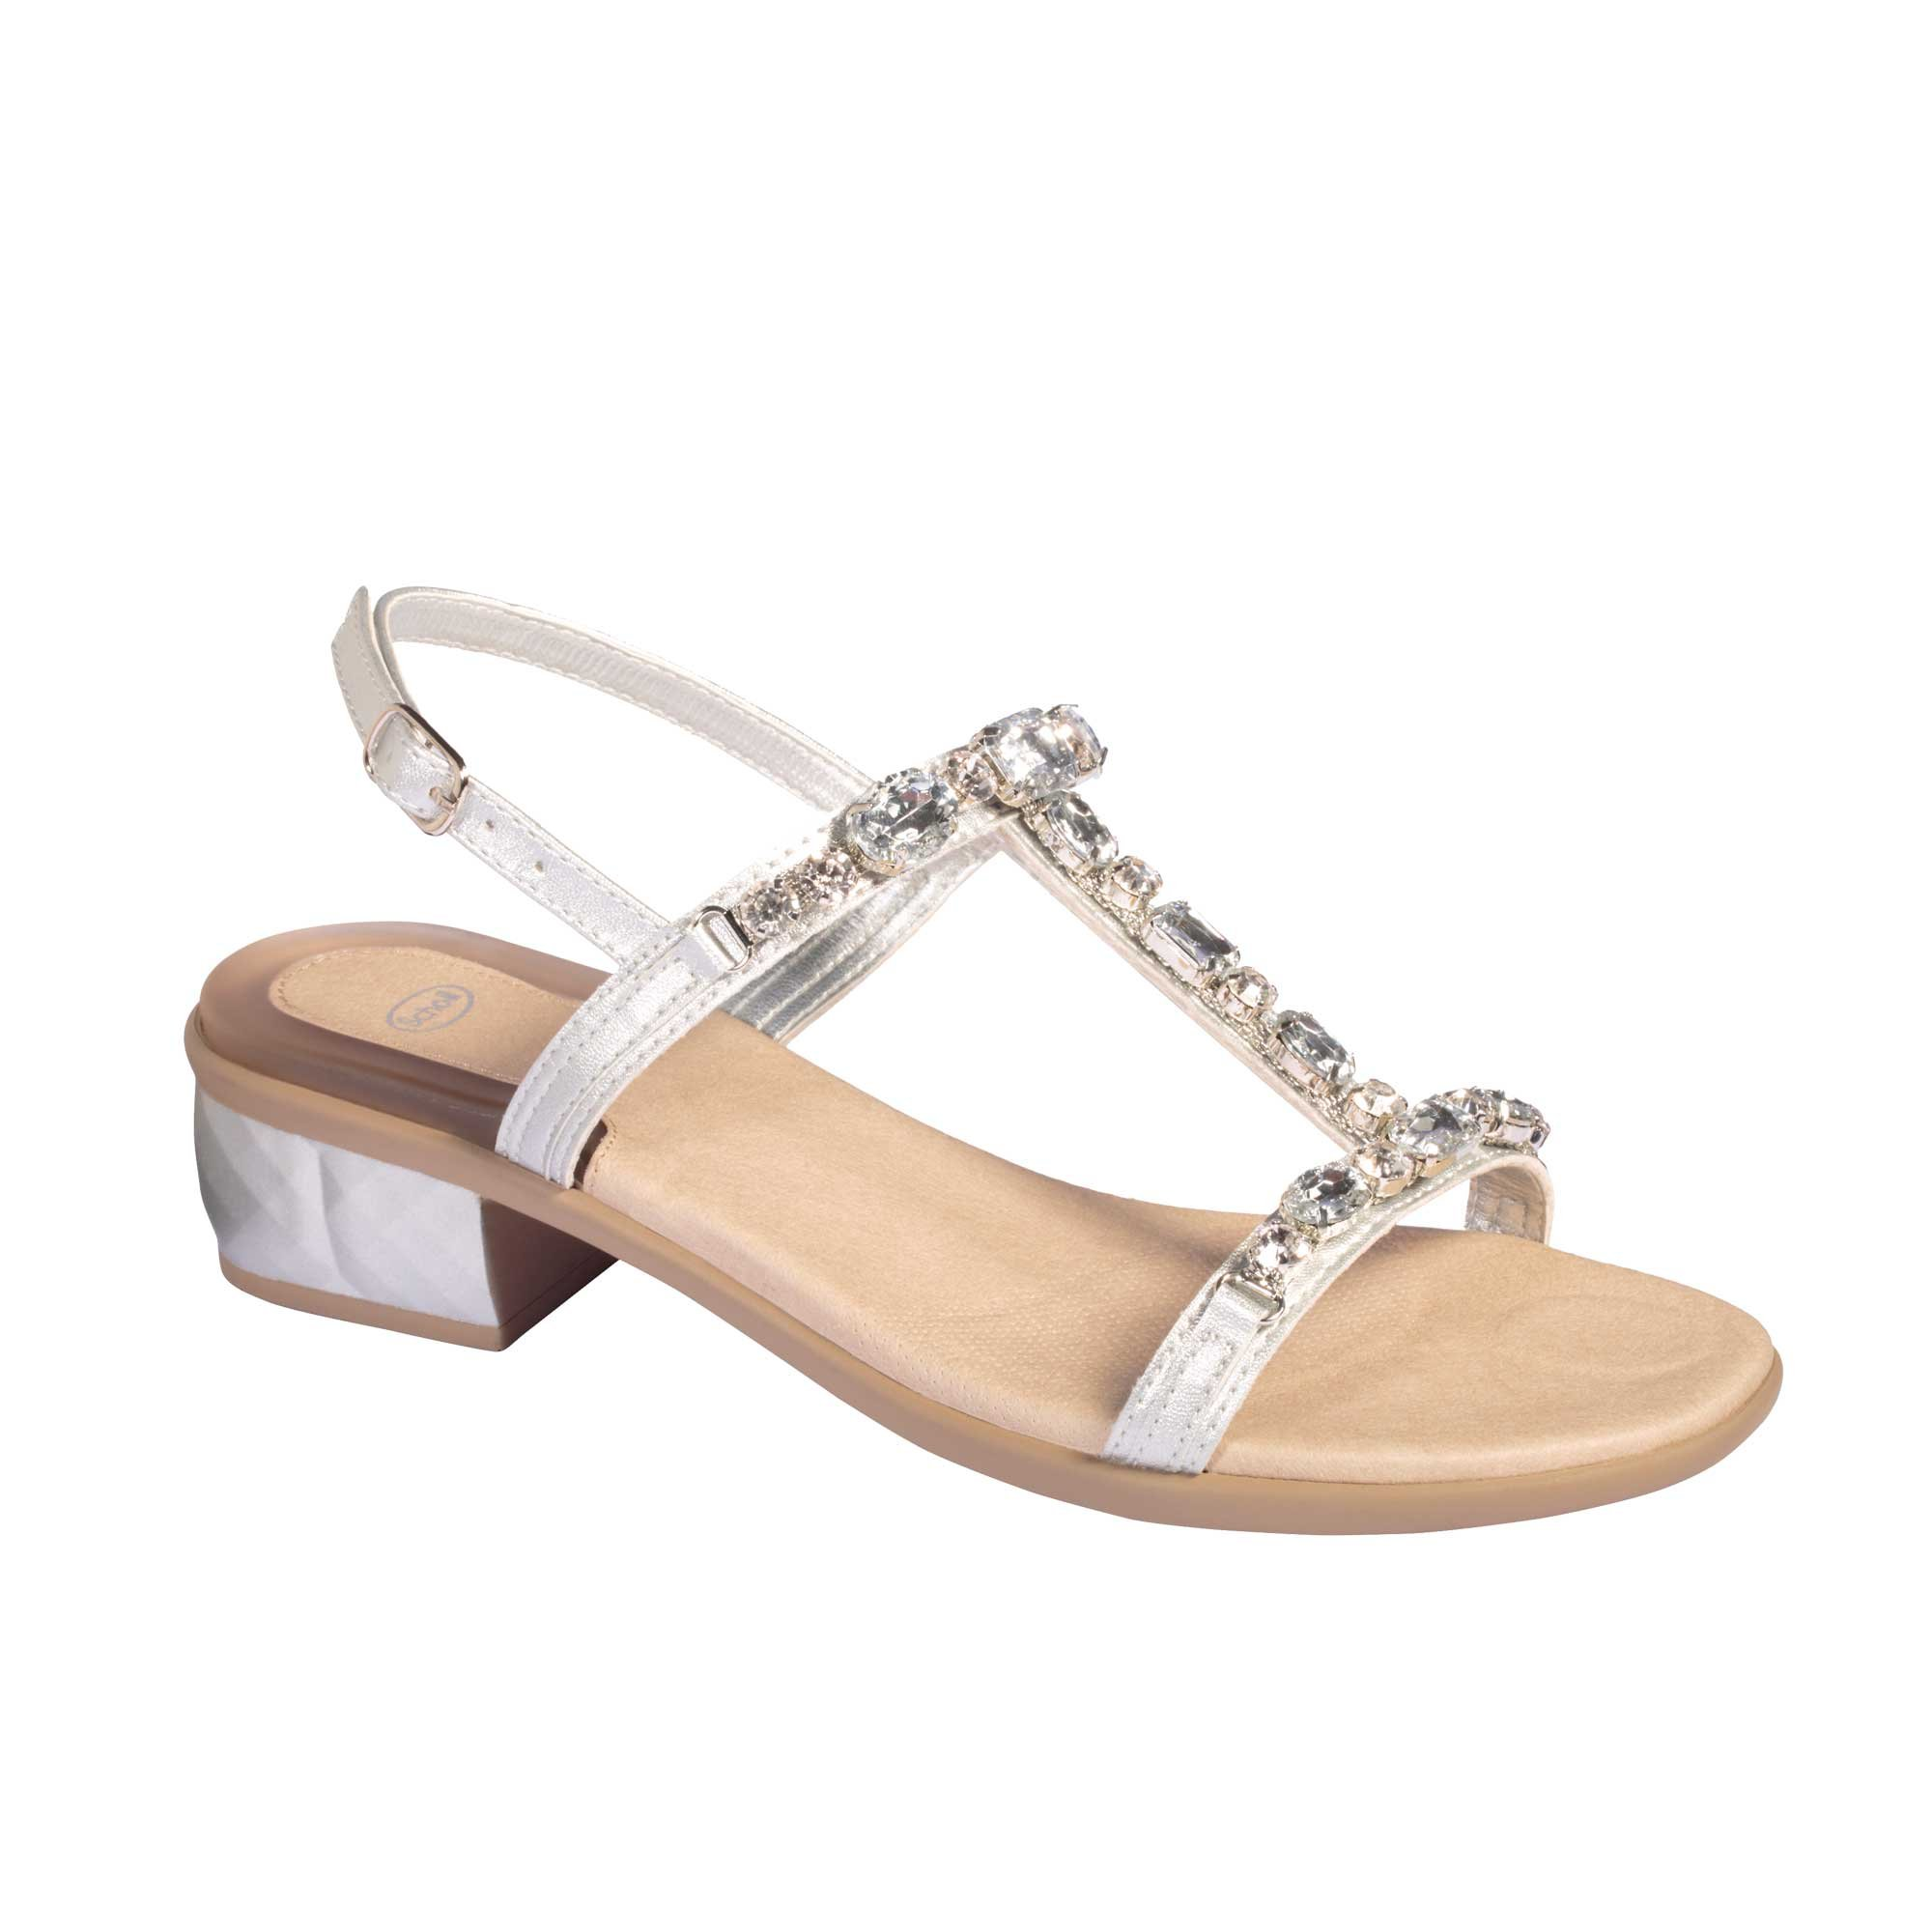 d38e42cea9f SCHOLL KLIO SYNJEW WOMEN S SANDALS WITH BEEDS SILVER